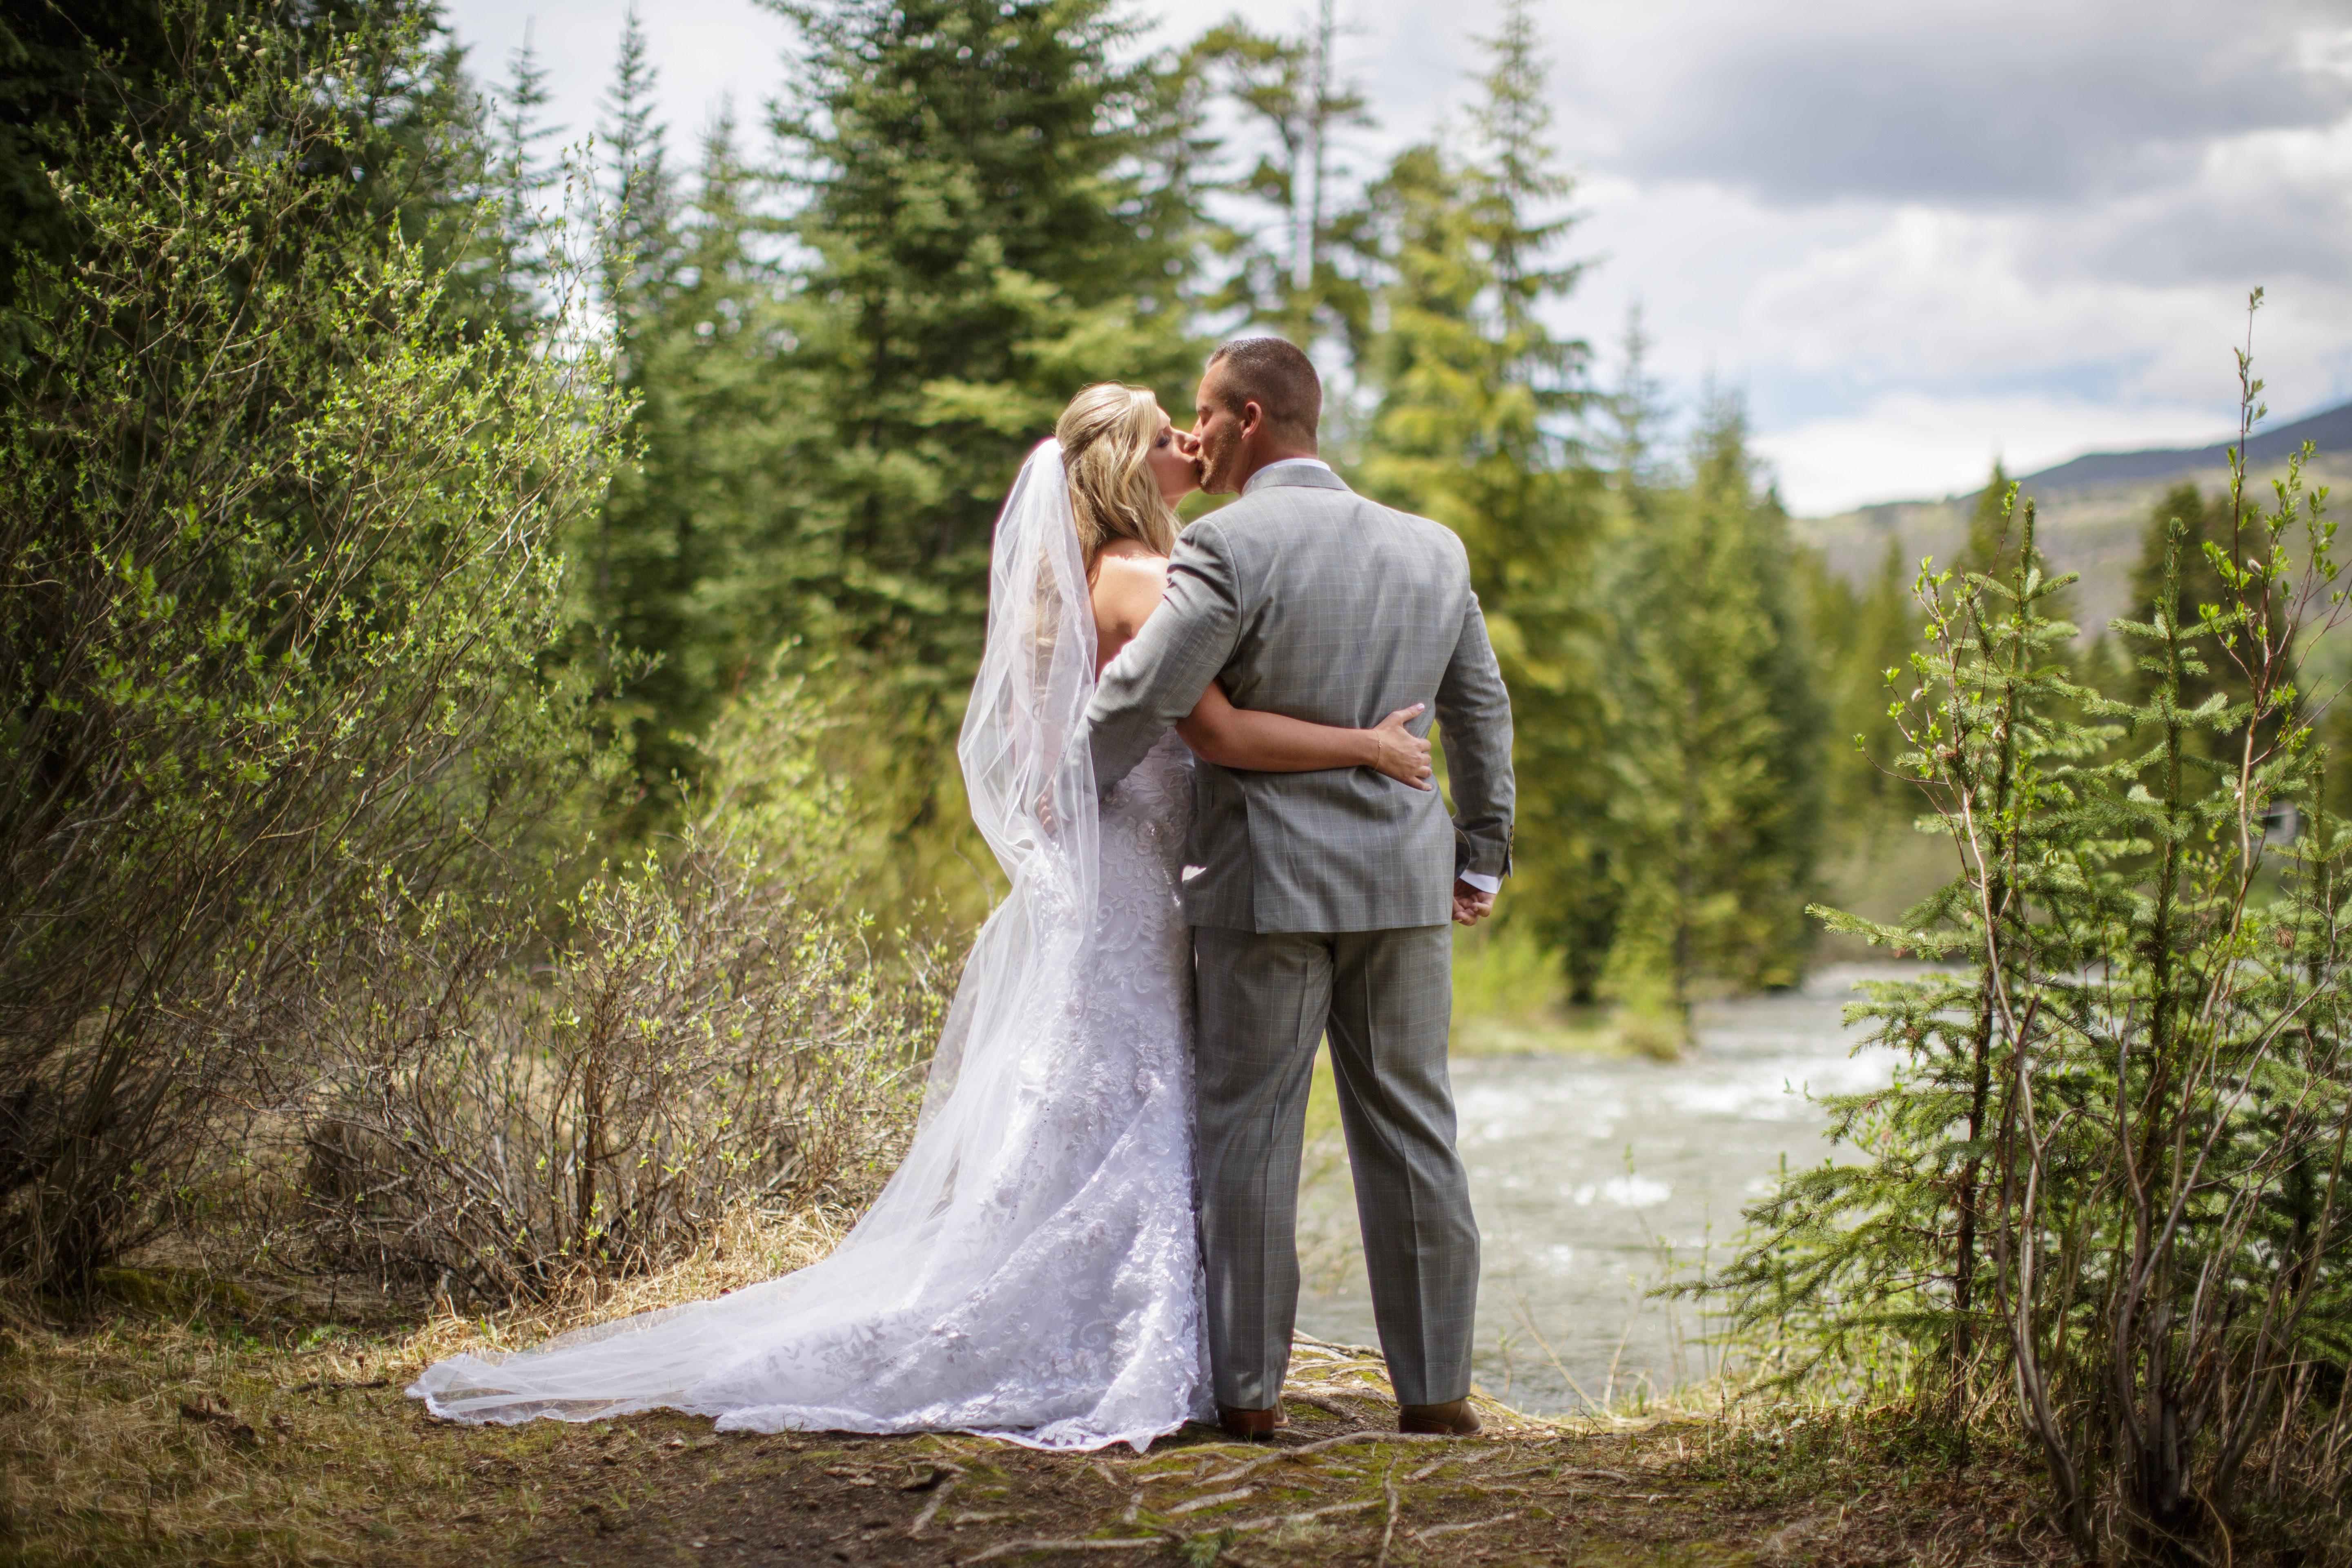 From Start To Finish Our Experience With Keystone For Wedding Was World Cl We Have Nothing But Positive Things Share About All Of The